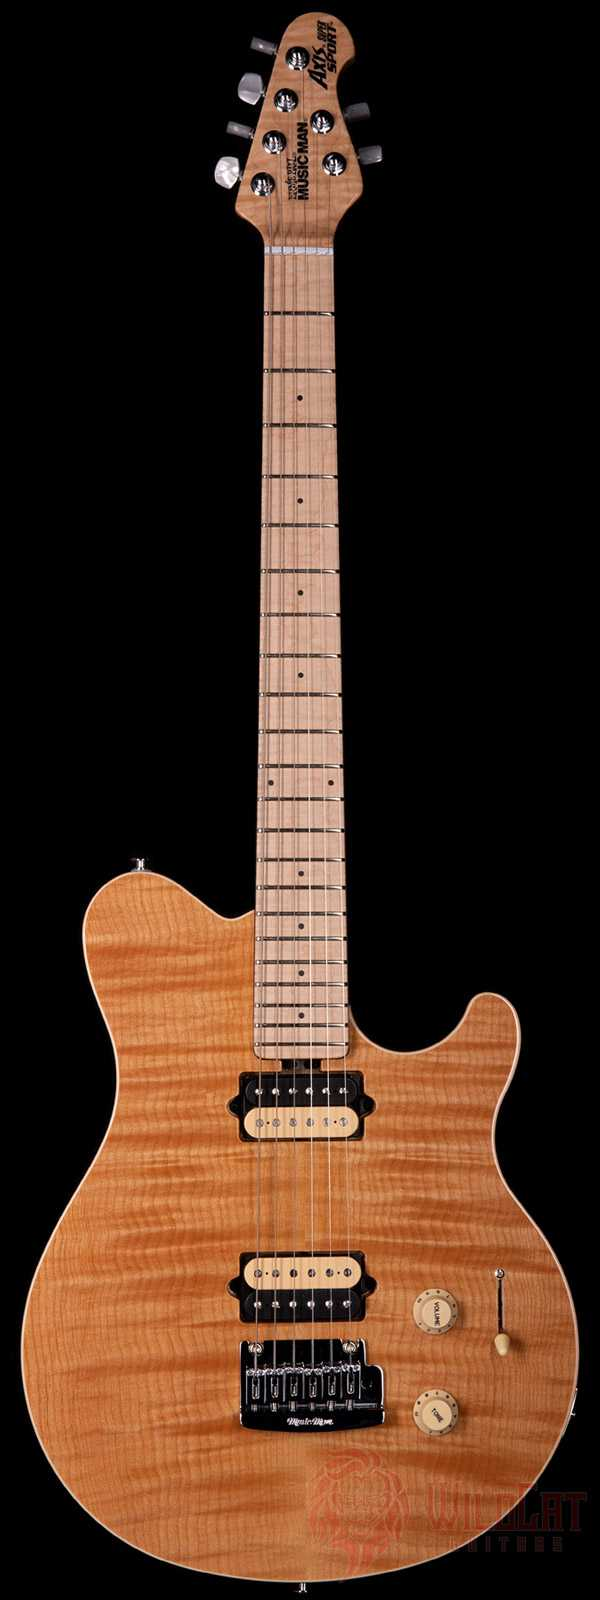 Ernie Ball Music Man Axis Super Sport Tremolo Trans Gold Flame Top